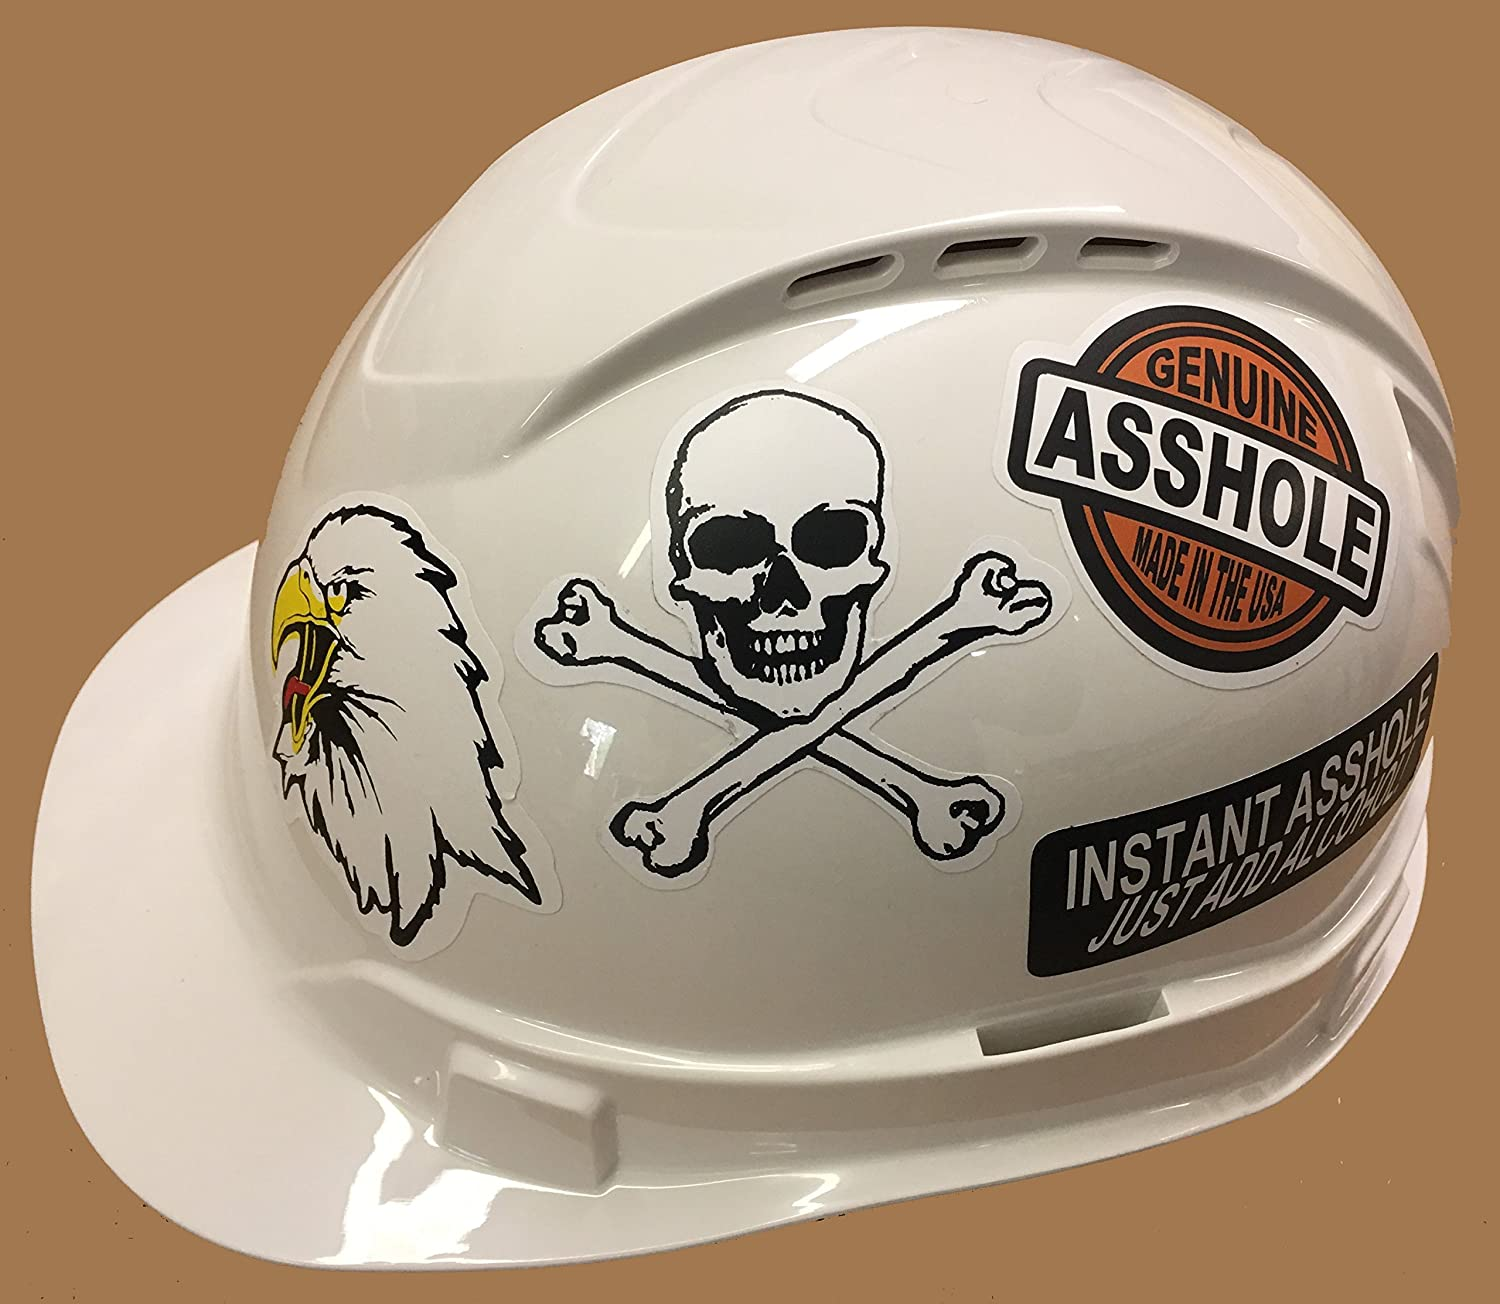 Helmetstickers.com Perfect gift or stocking stuffer Helmet UV Coated etc 21 Vinyl Decals rude funny stickers Lunchbox Made in the USA Hardhat Crude Great for Toolbox